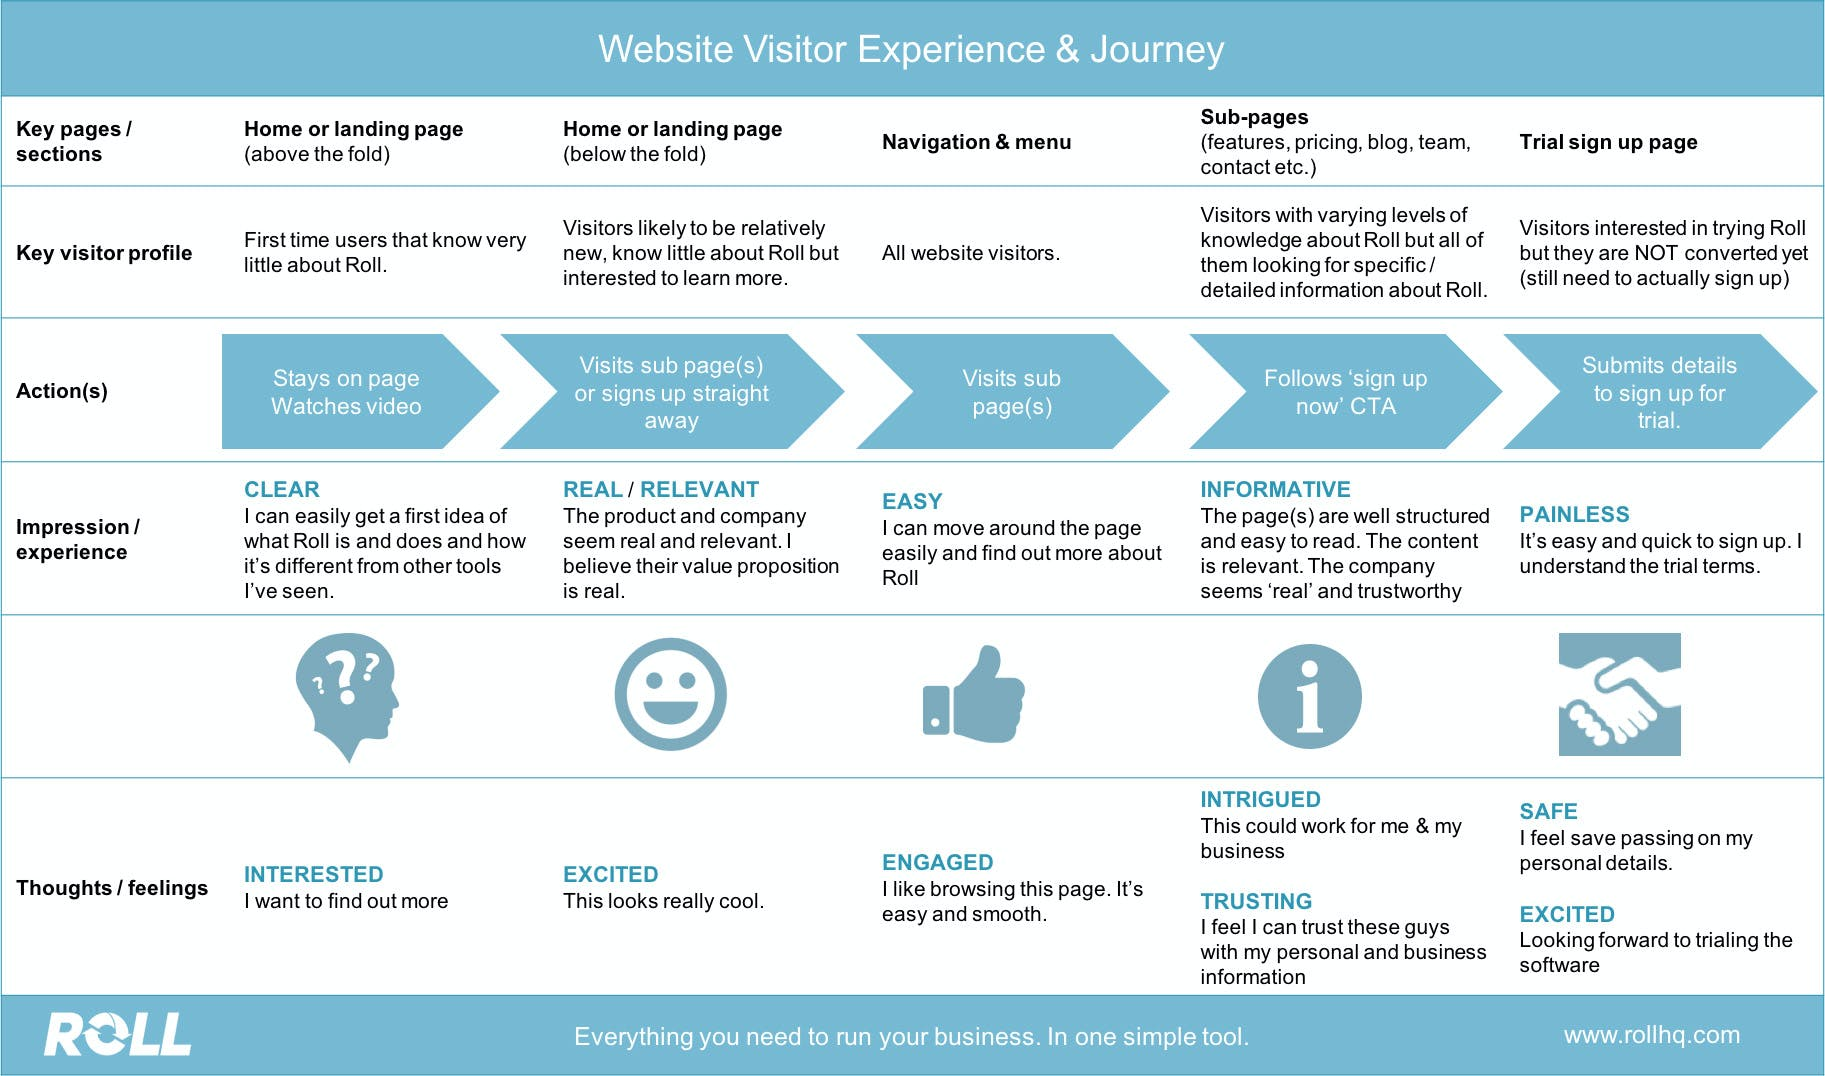 Website visitor experience and journey flow chart